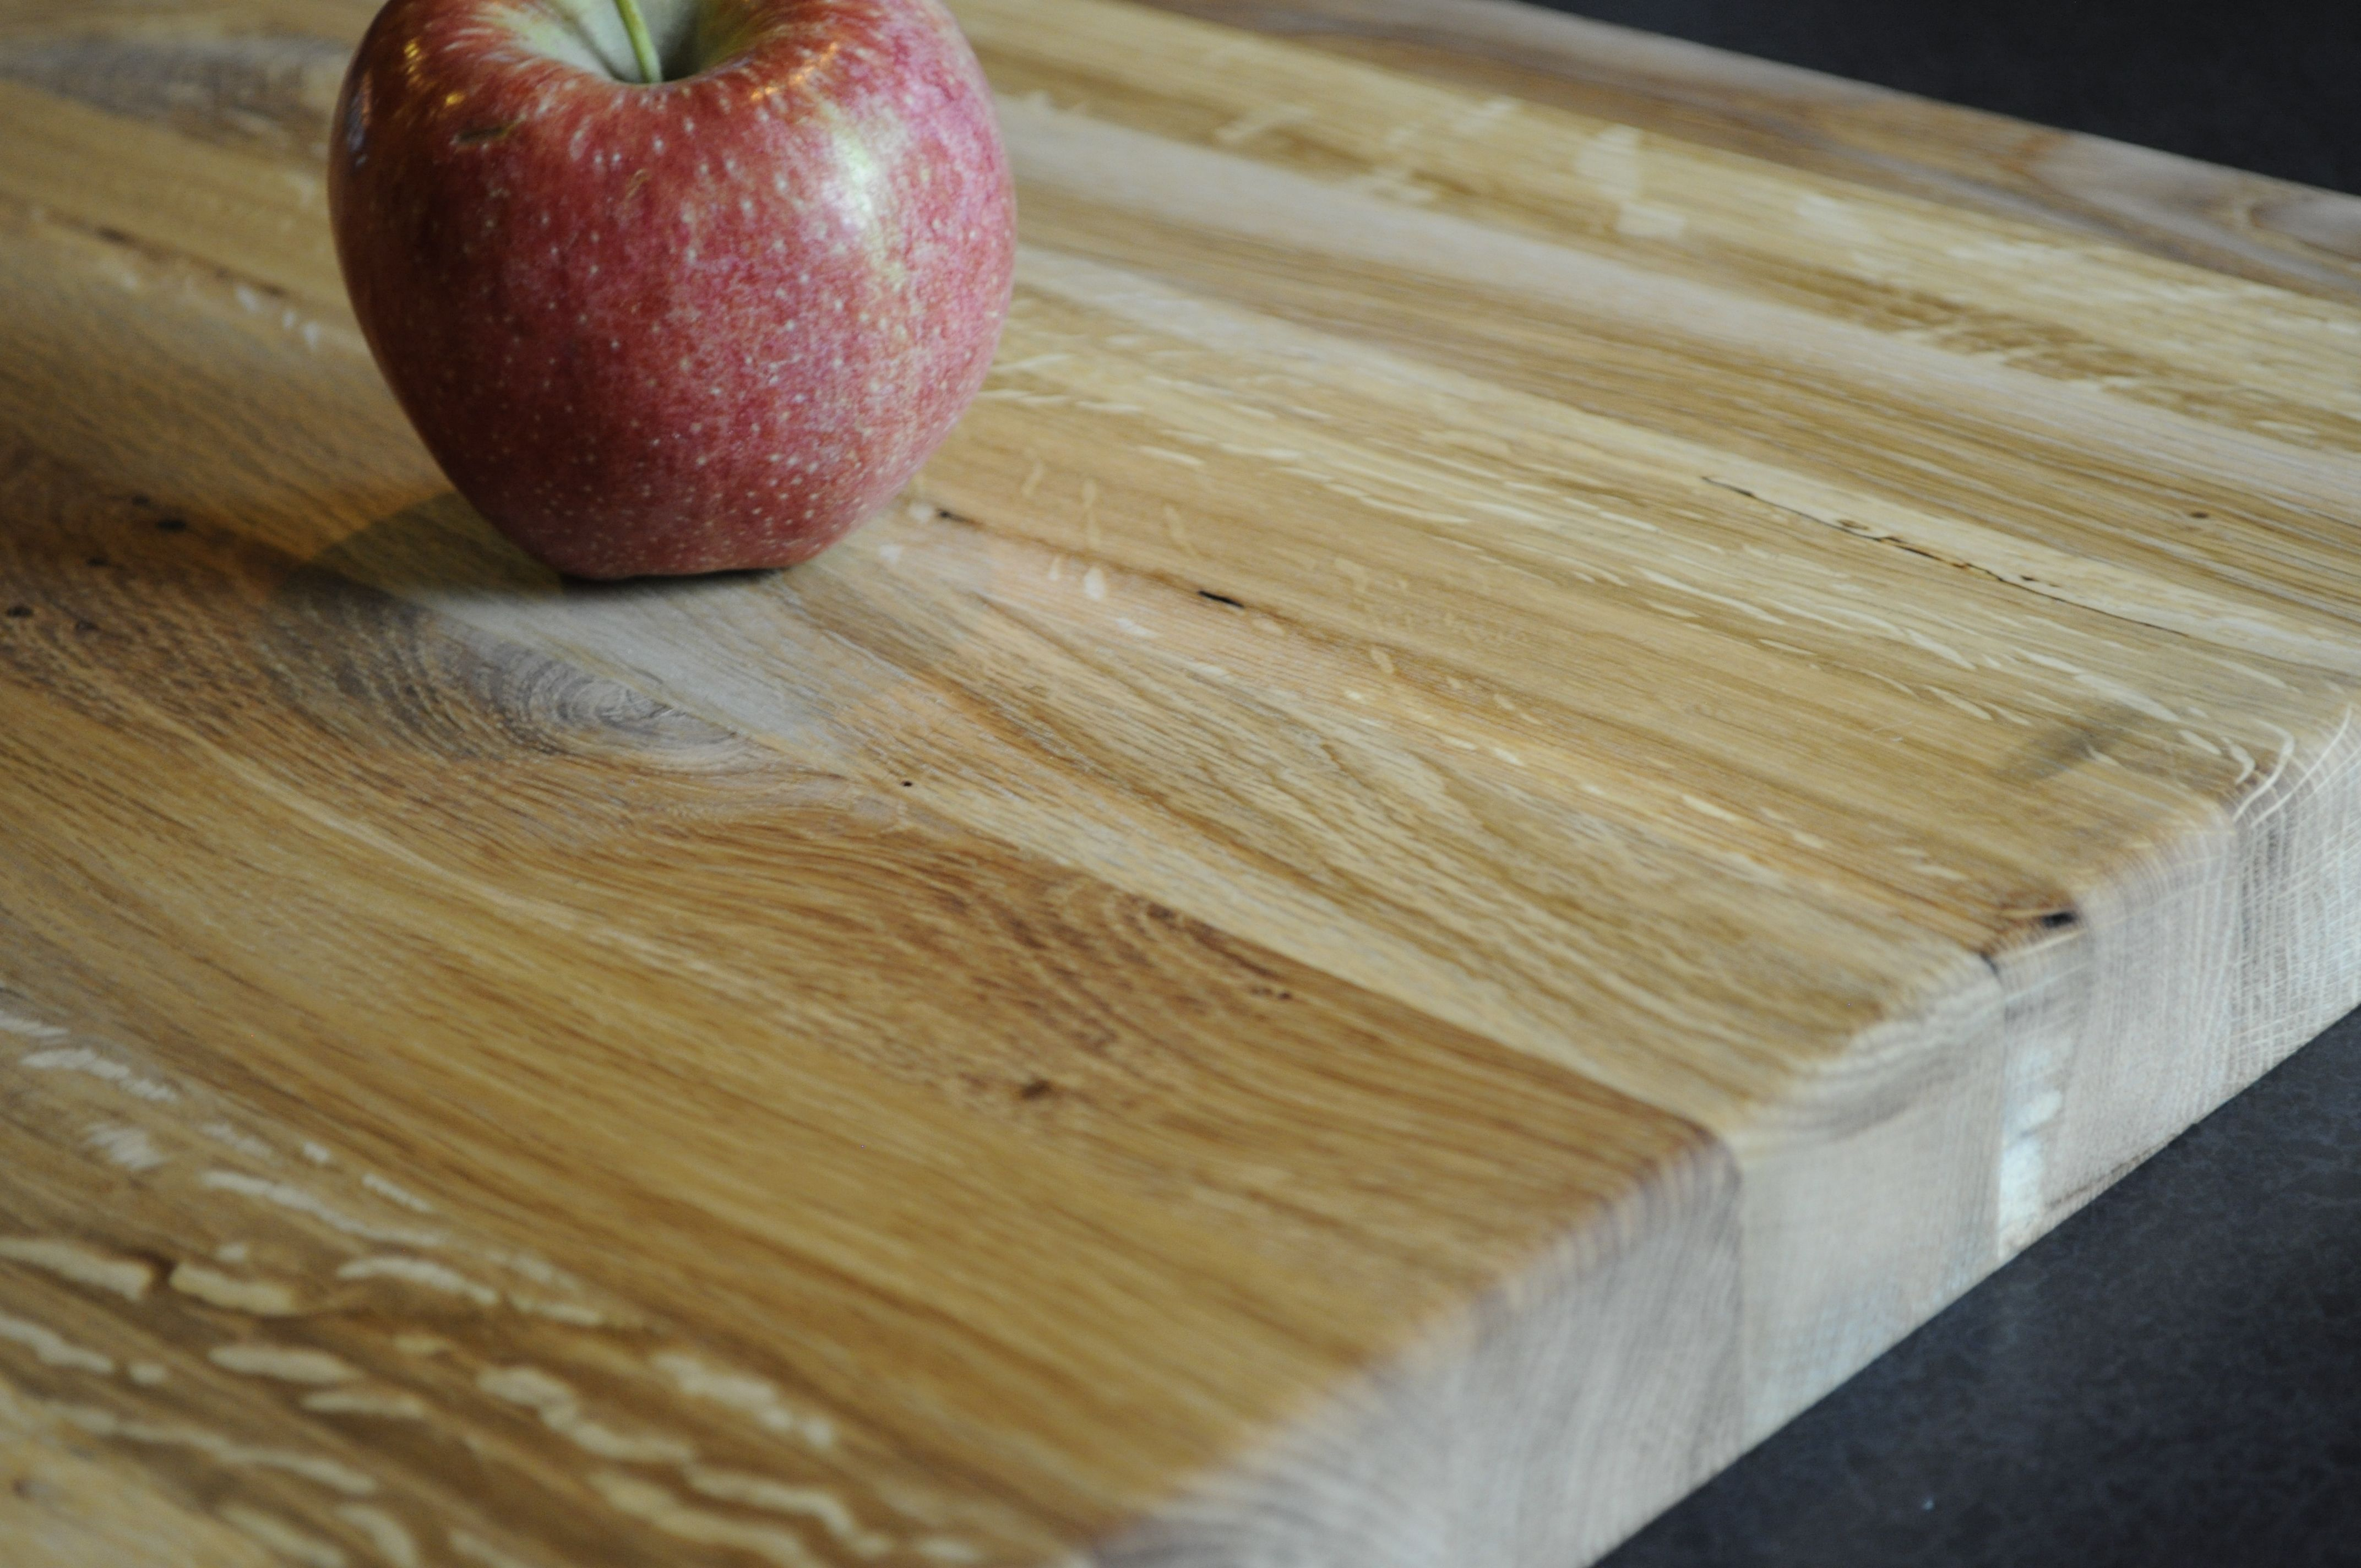 Wood makes an amazing counter top.  It is naturally resistant to bacteria, plus if it gets dented you can sand out the mark.